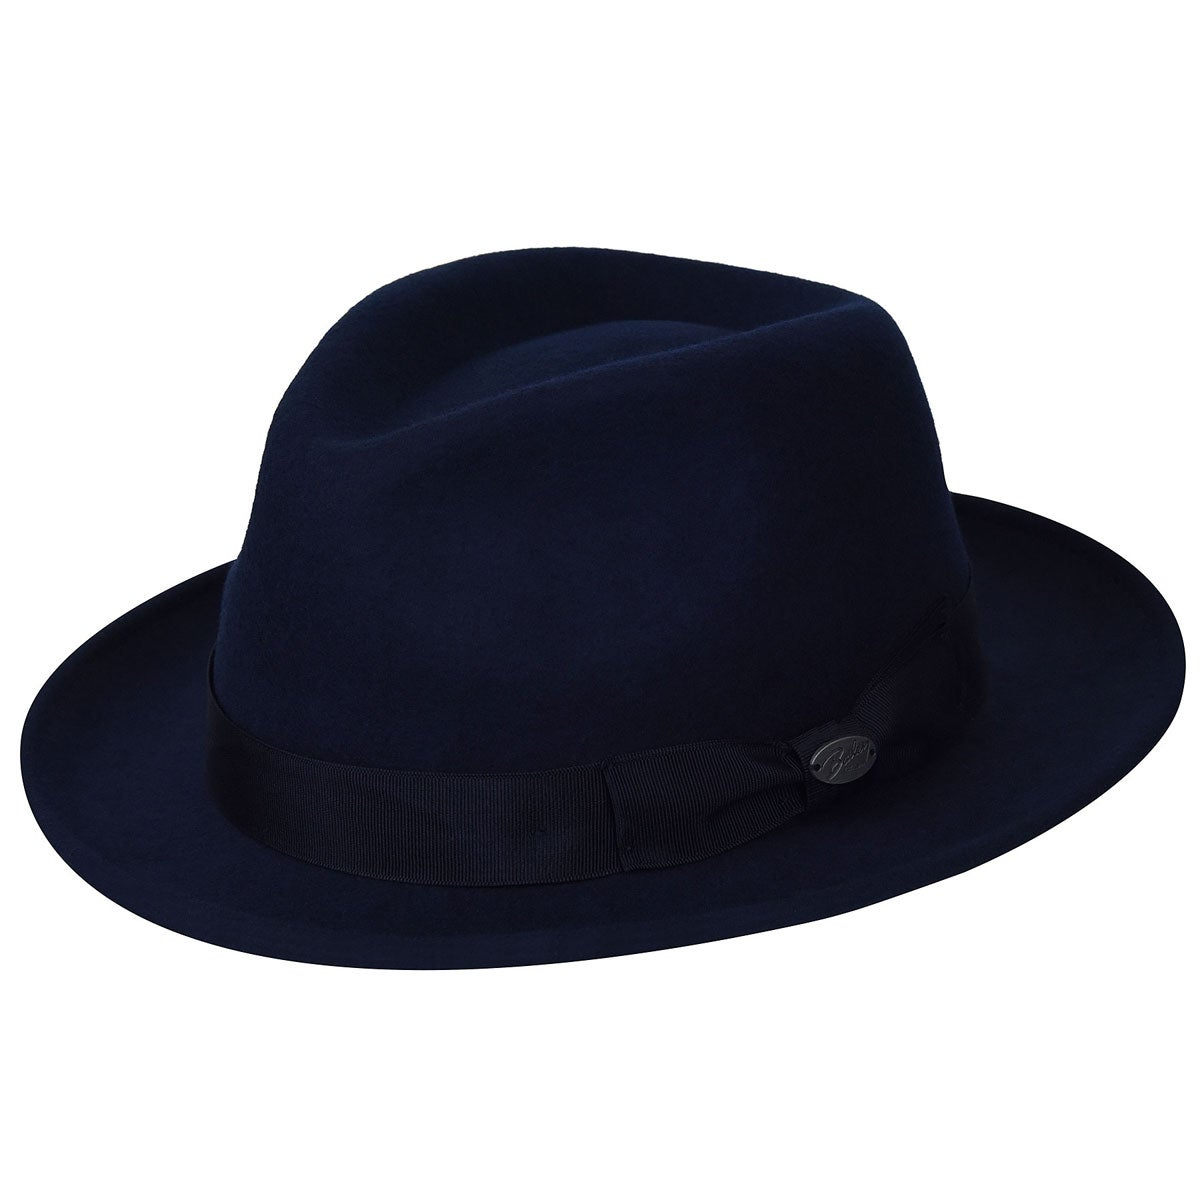 1950s Mens Hats | 50s Vintage Men's Hats Maglor Fedora $59.00 AT vintagedancer.com